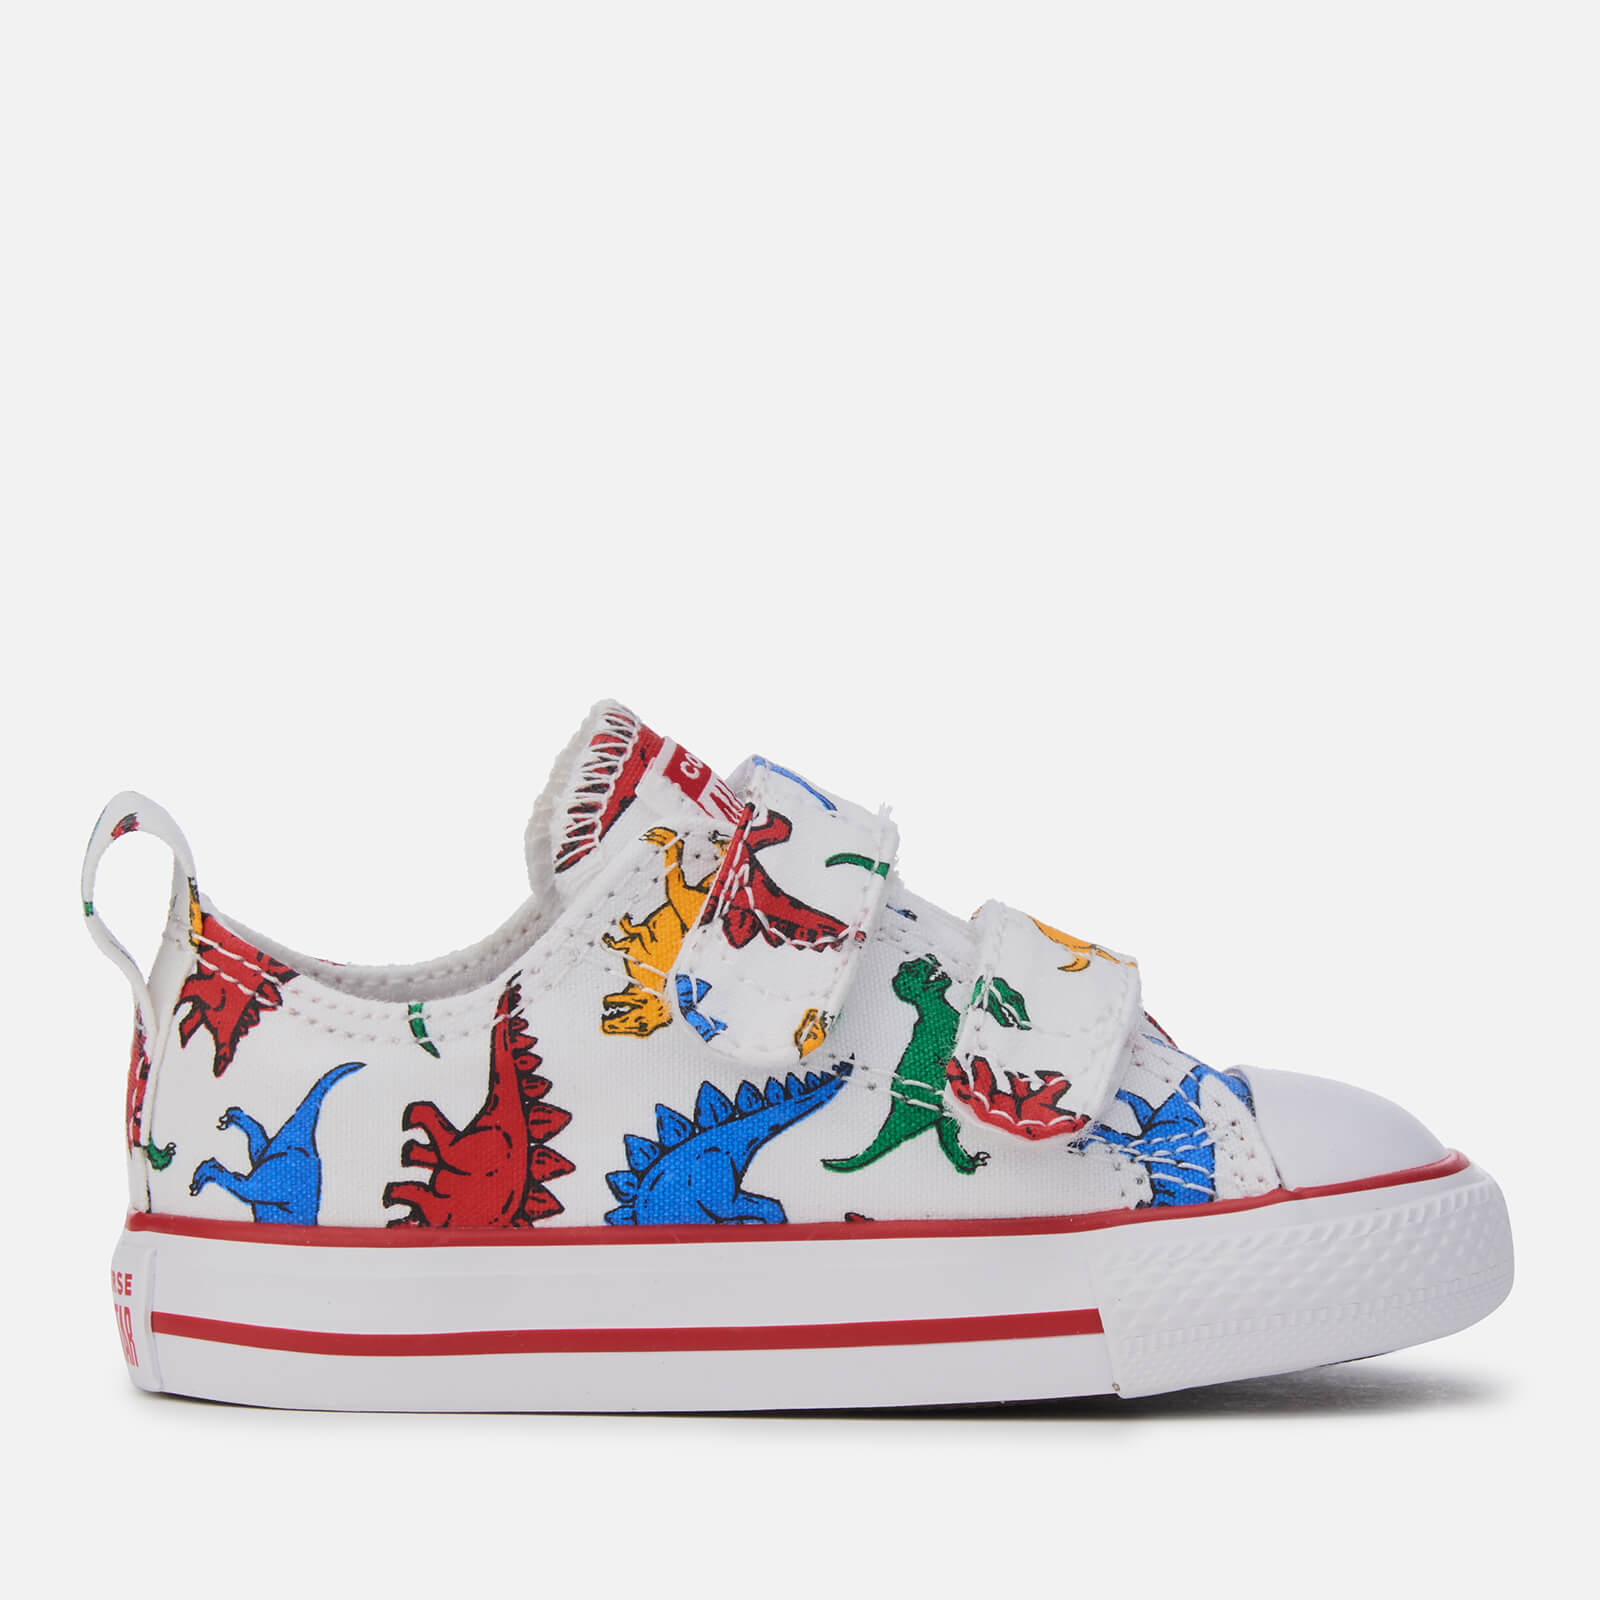 89da05ccd9f2 Converse Kids  Chuck Taylor All Star 2 Velcro Trainers - White Enamel  Red Totally Blue Junior Clothing